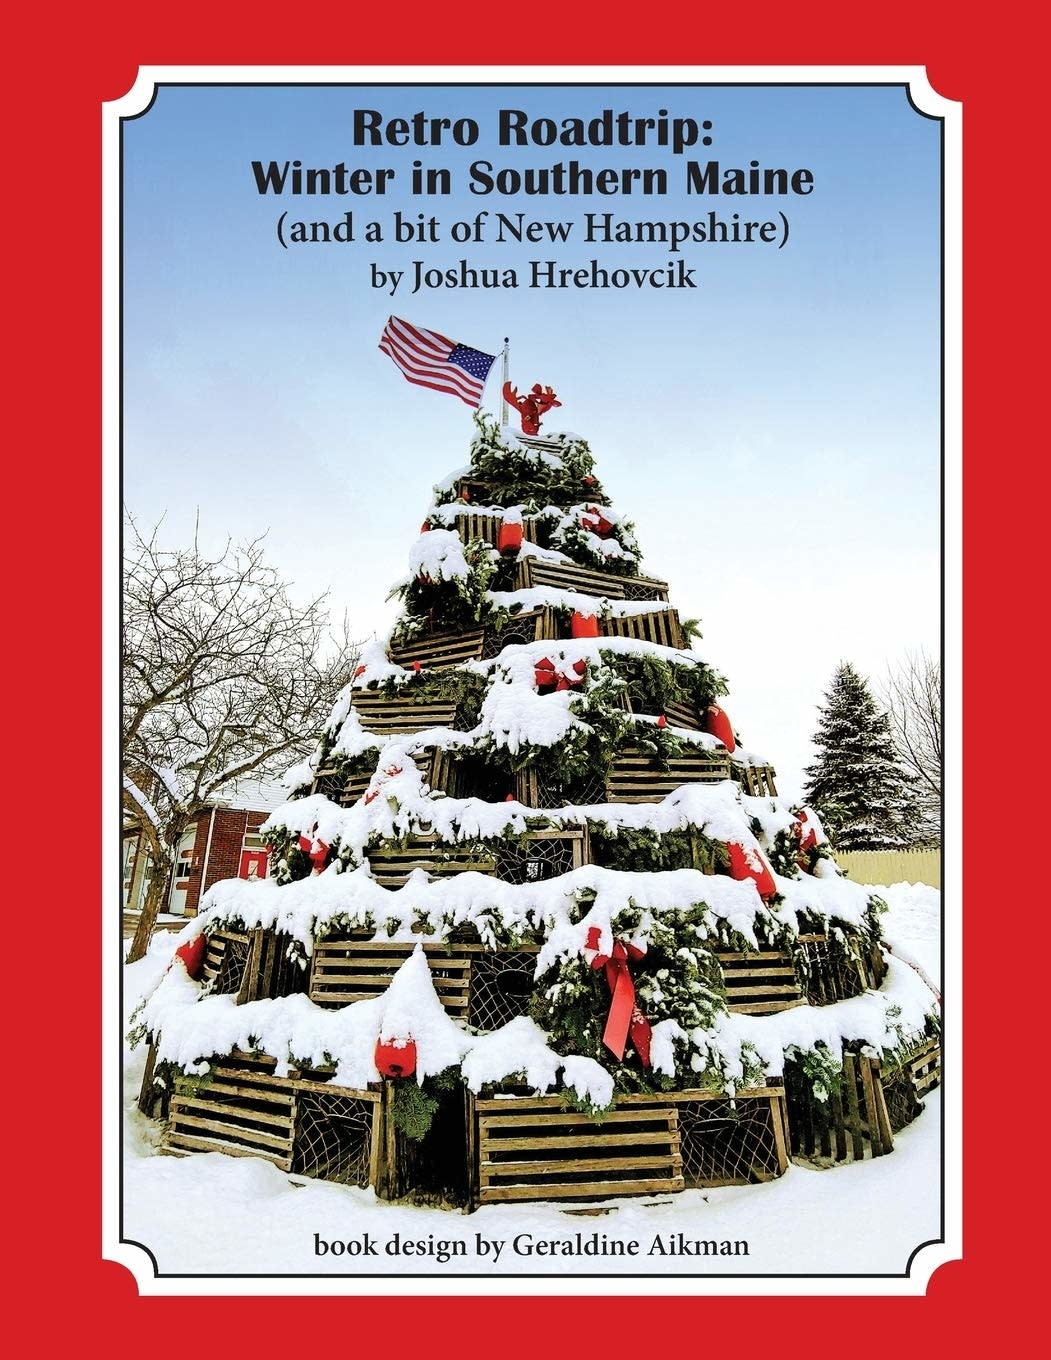 Retro Roadtrip: Winter in Southern Maine (and a bit of New Hampshire)